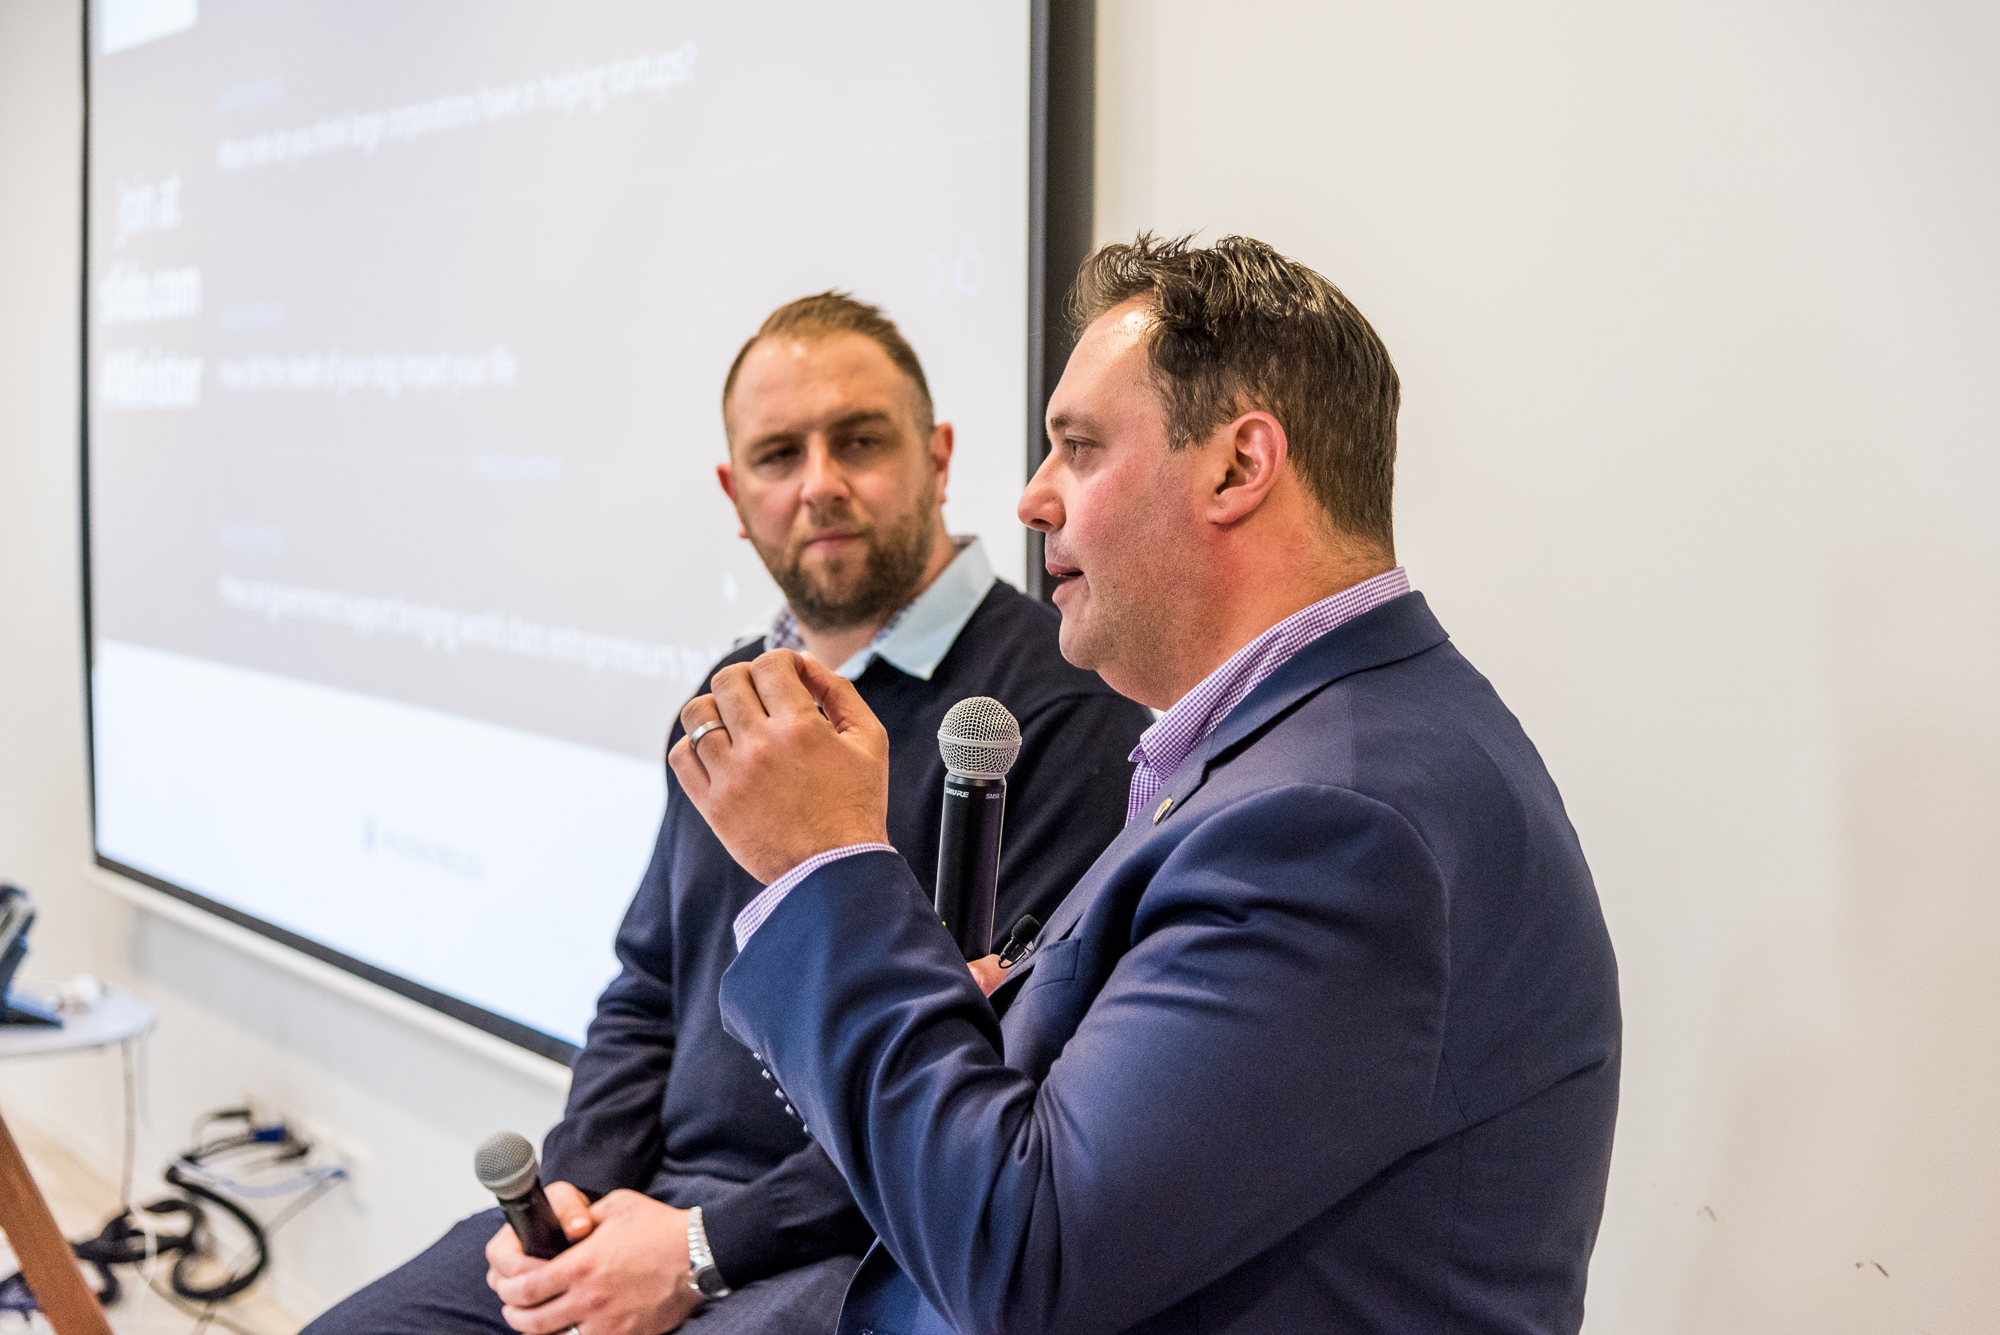 The Hon. Philip Dalidakis, Minister for Small Business, Innovation and Trade with Chris Joannou, Startup Grind Melbourne Director on 24 August 2016  (Source: Startup Melbourne)